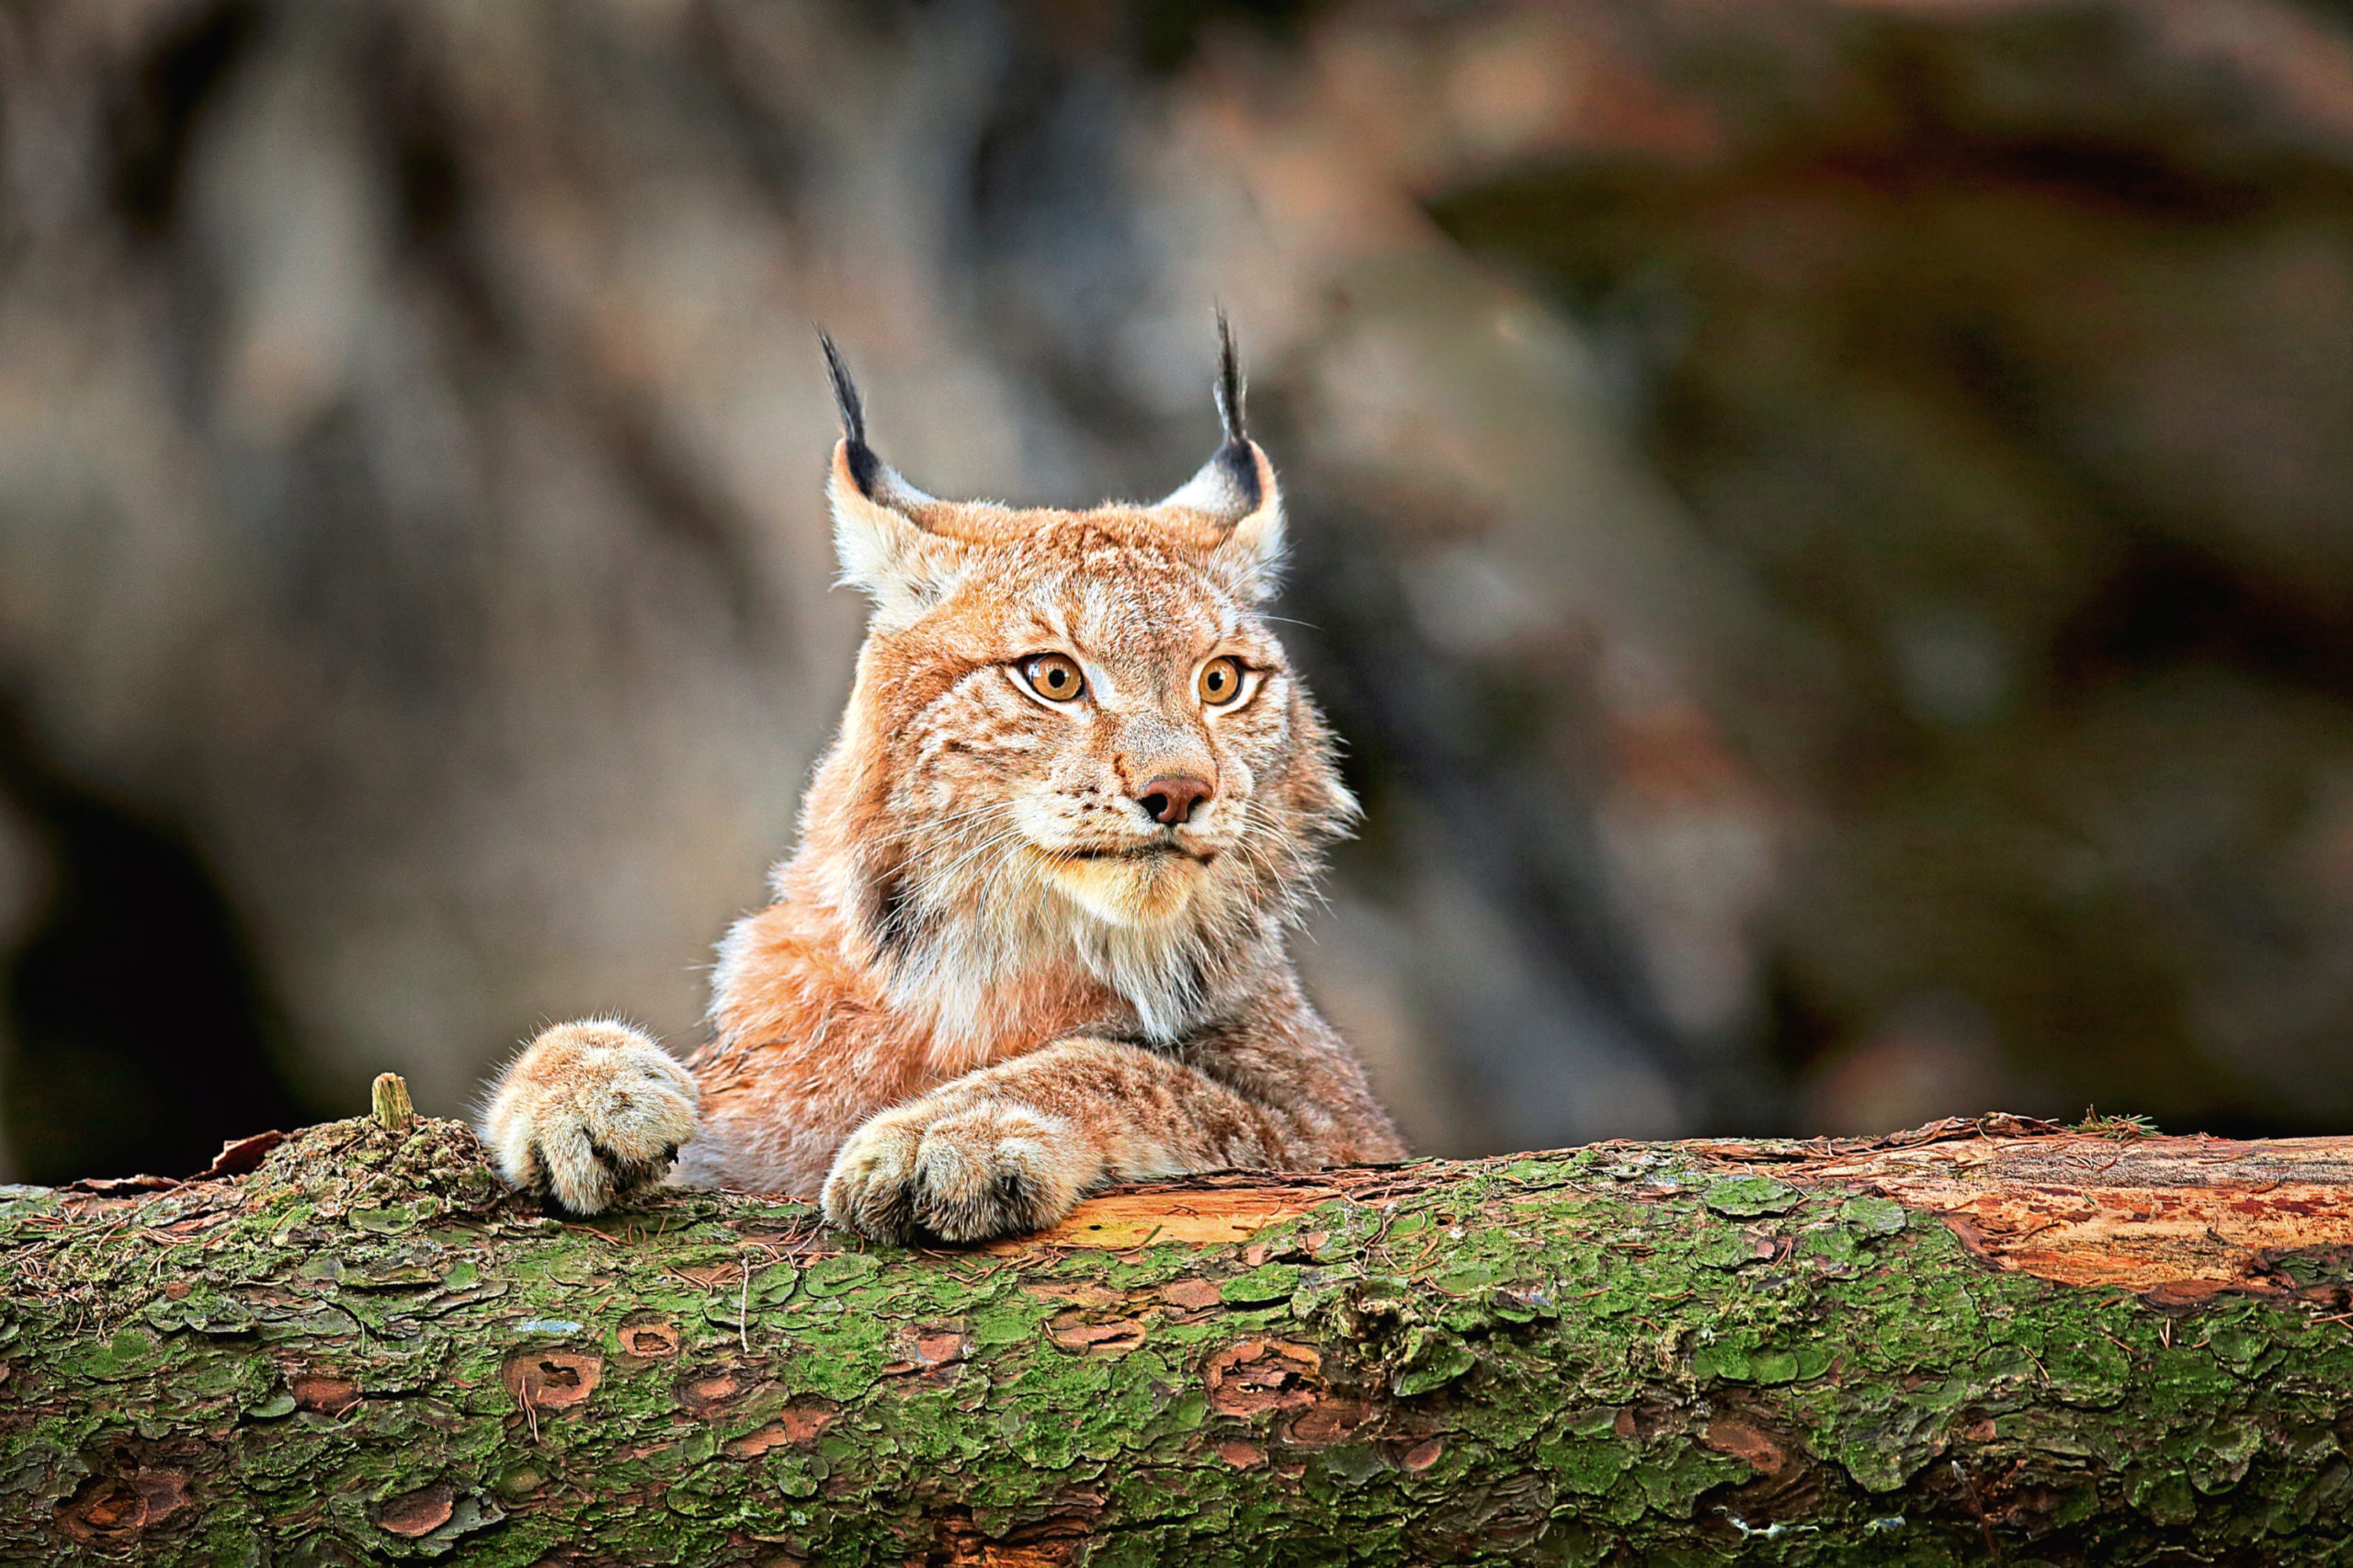 The Trust wants to release three Lynx in the Queen Elizabeth Forest Park.